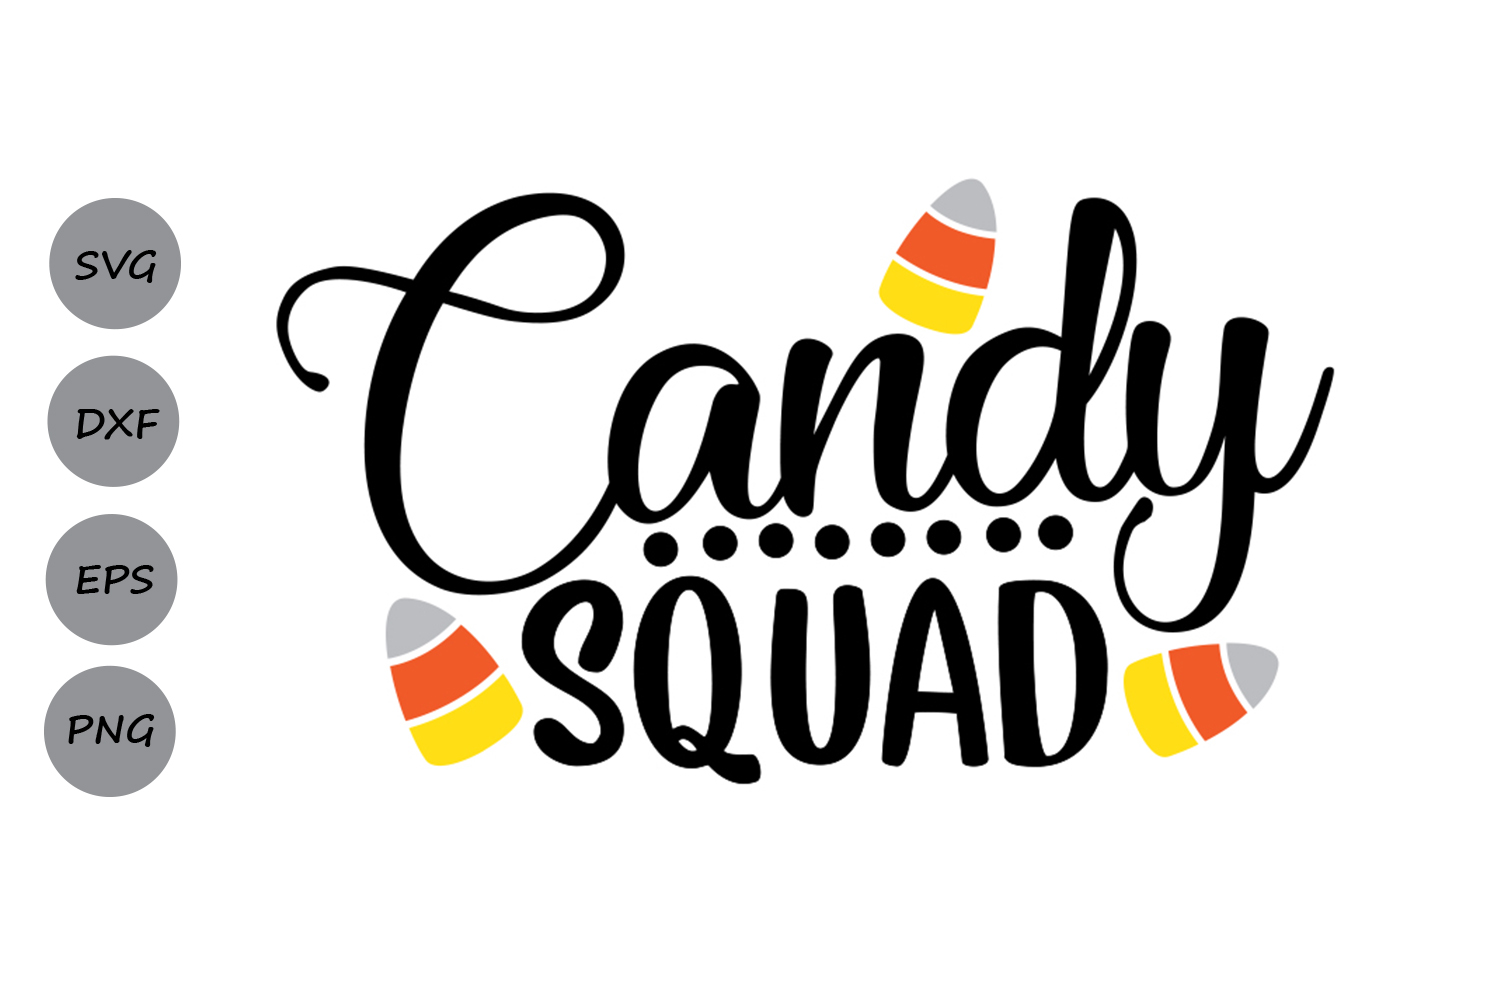 Download Free Candy Squad Graphic By Cosmosfineart Creative Fabrica for Cricut Explore, Silhouette and other cutting machines.